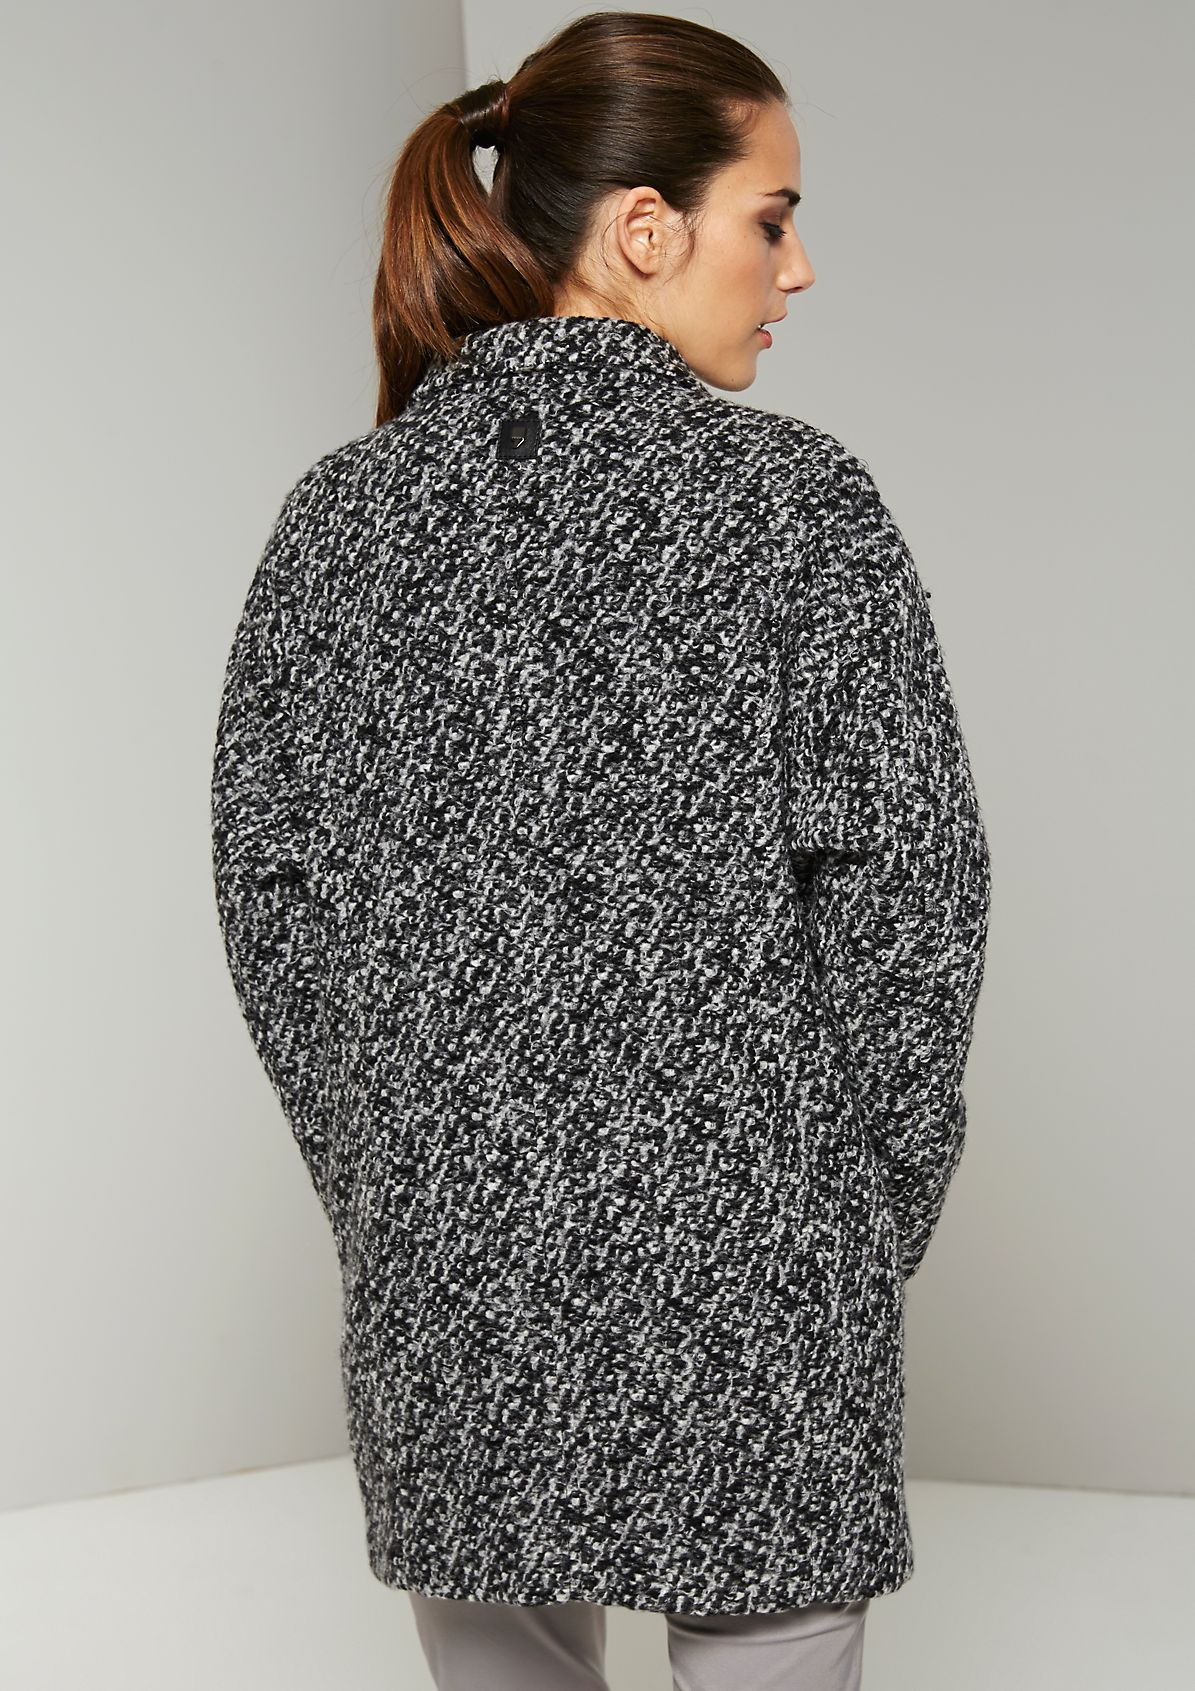 Soft autumn coat in a trendy mottled black & white finish from s.Oliver